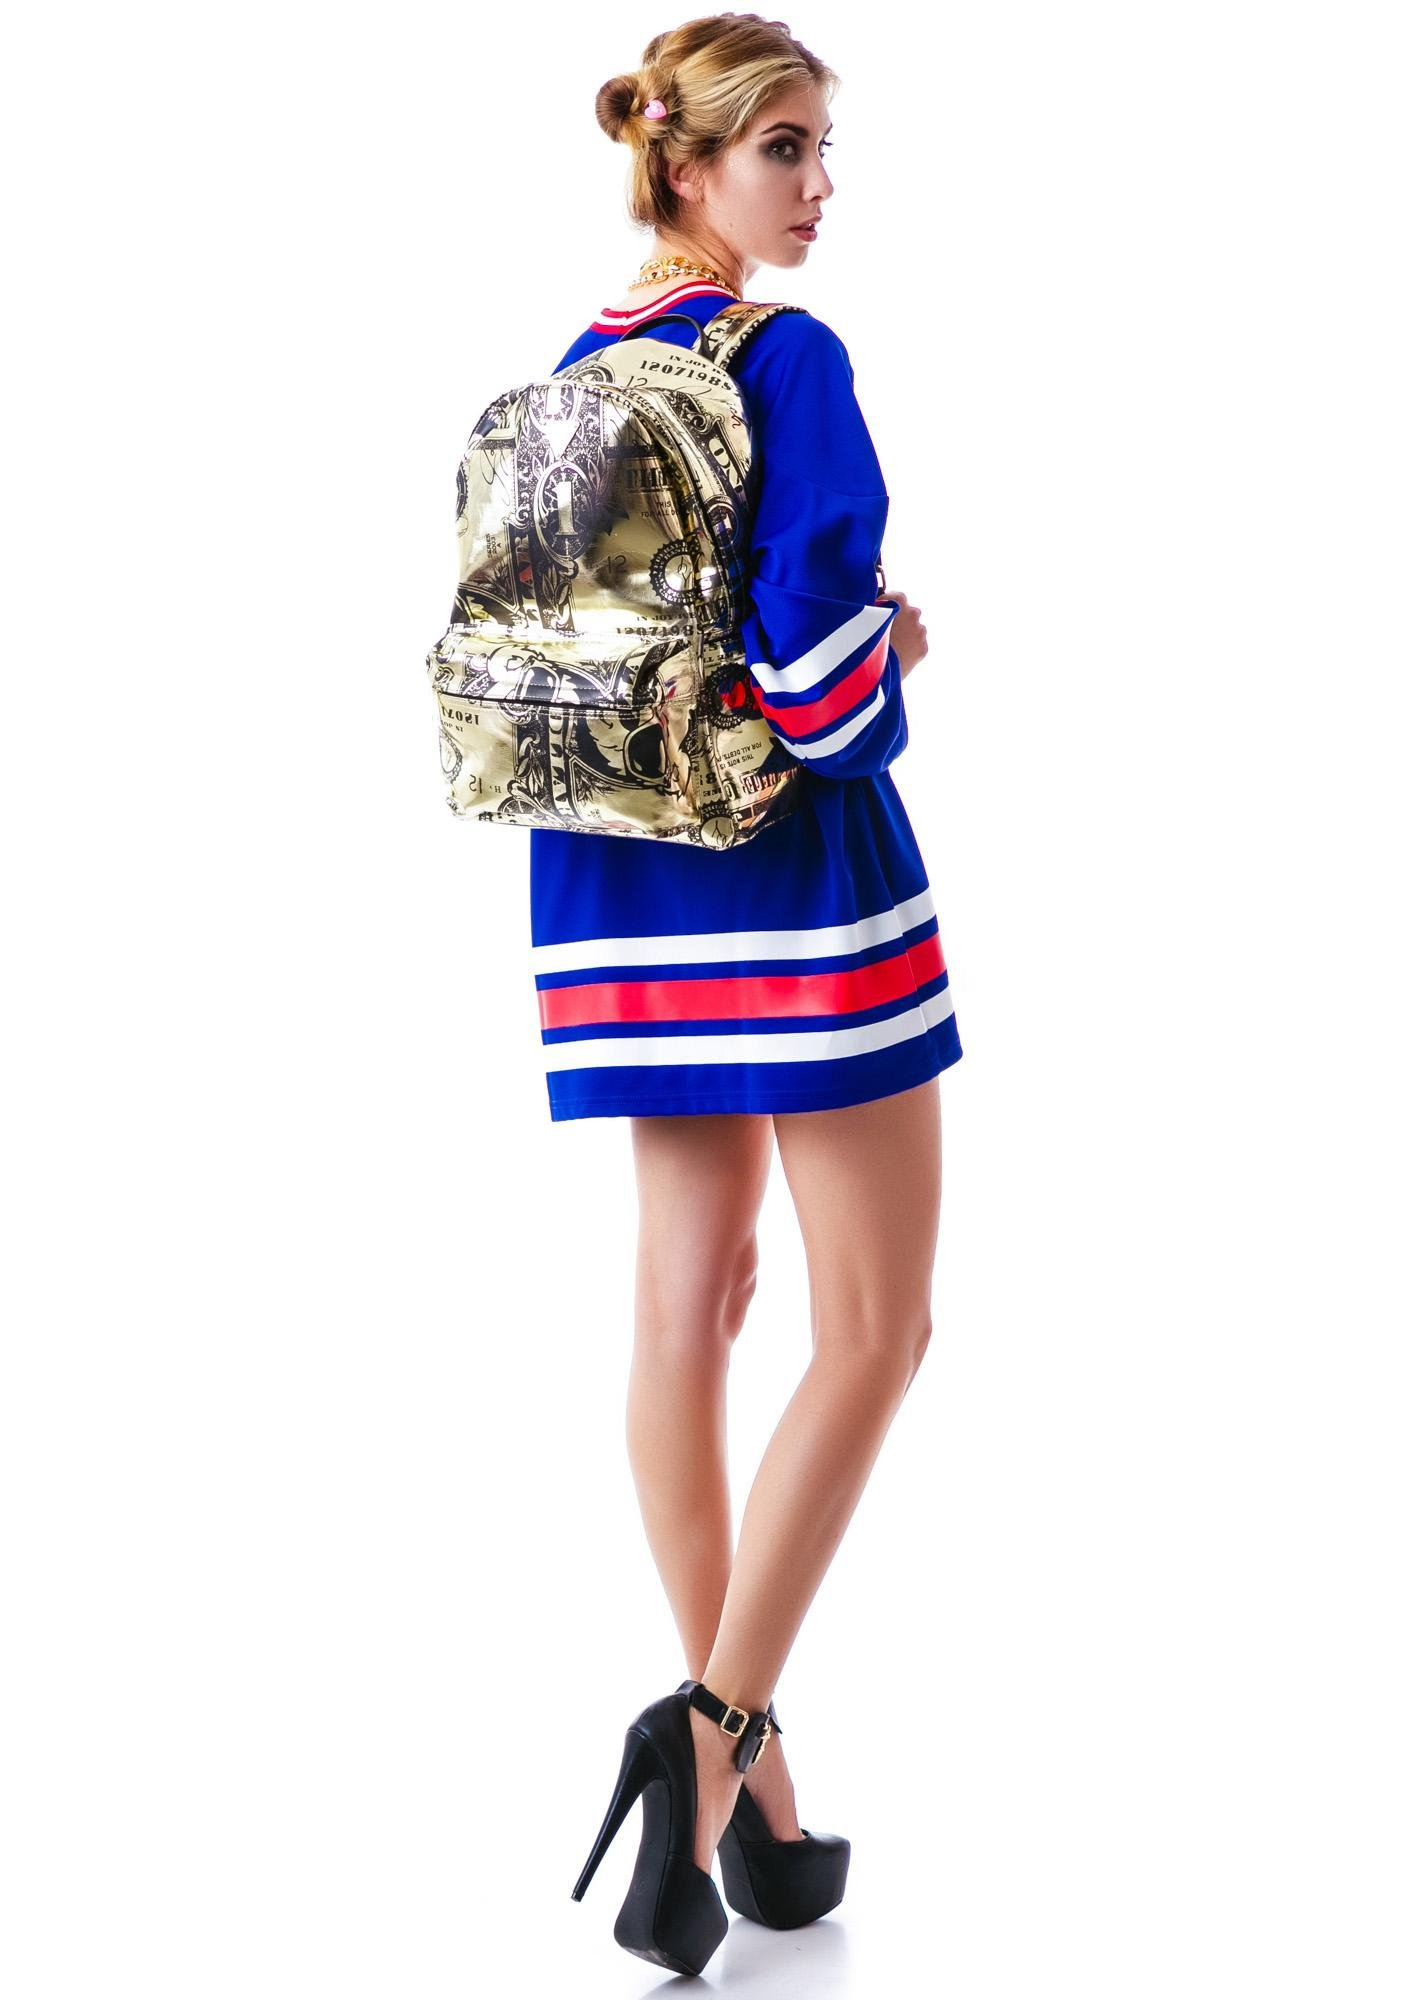 Joyrich Cuddle Currency Backpack